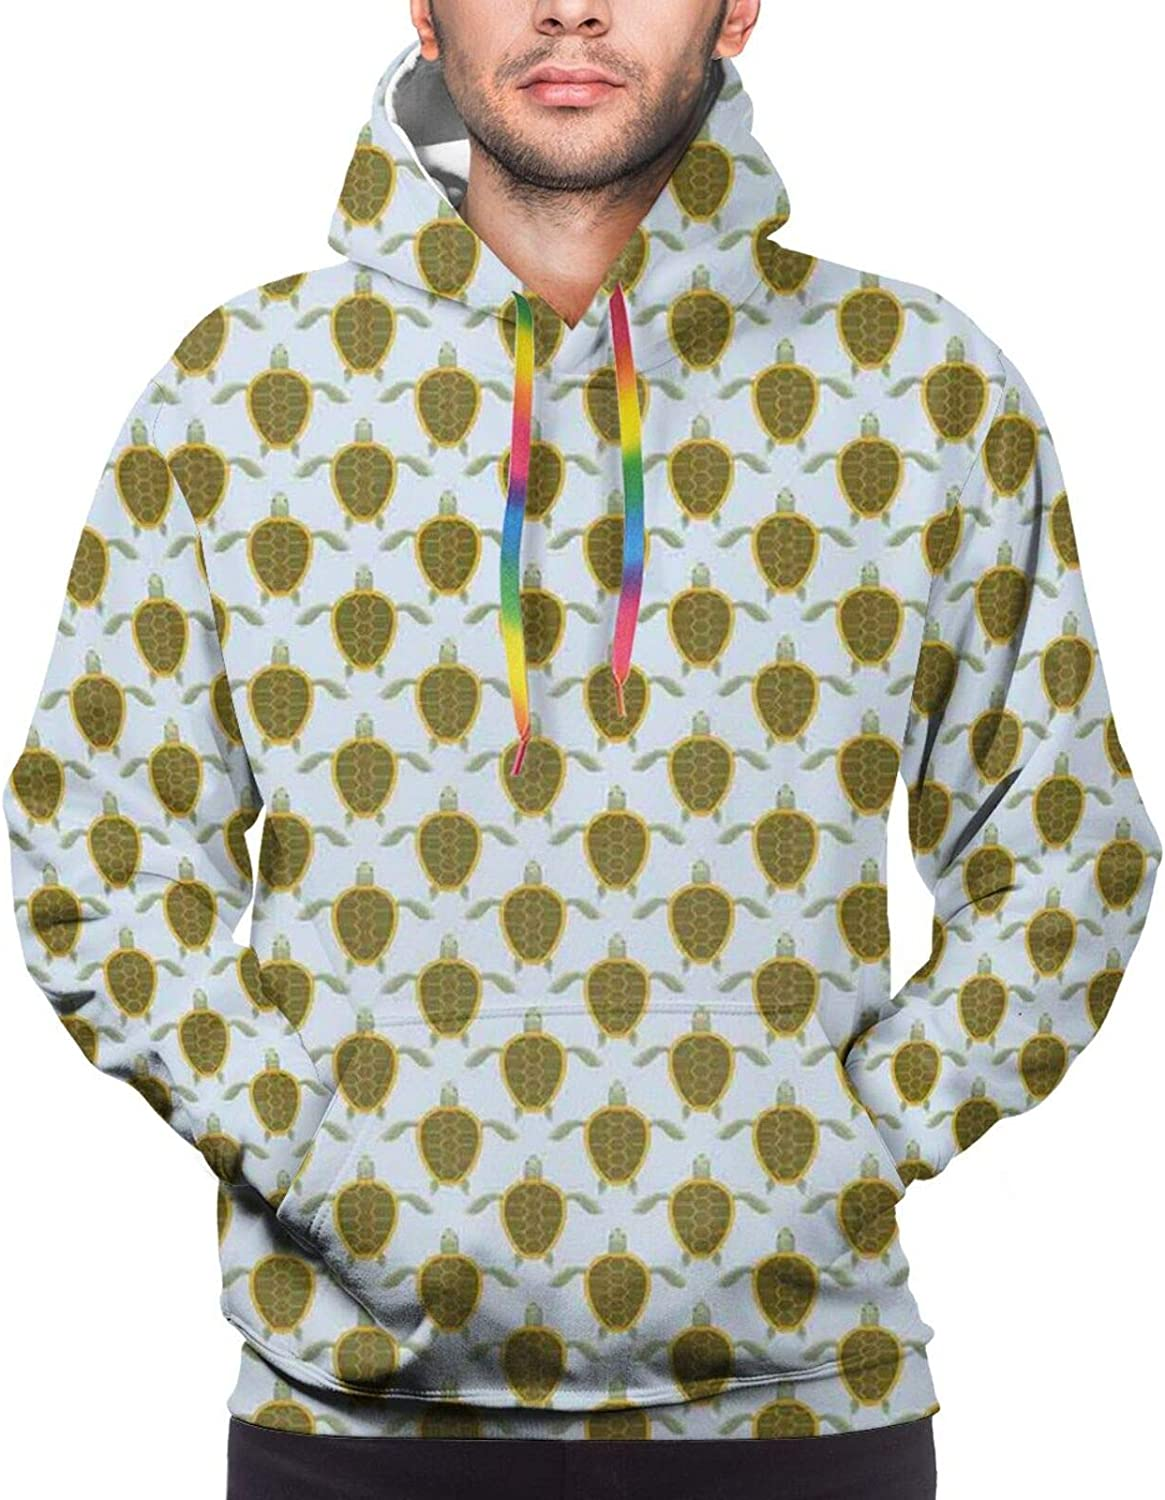 Men's Hoodies Sweatshirts,Flock of Crows Monochrome Illustration of Birds Flying Into The Sky from A Tree